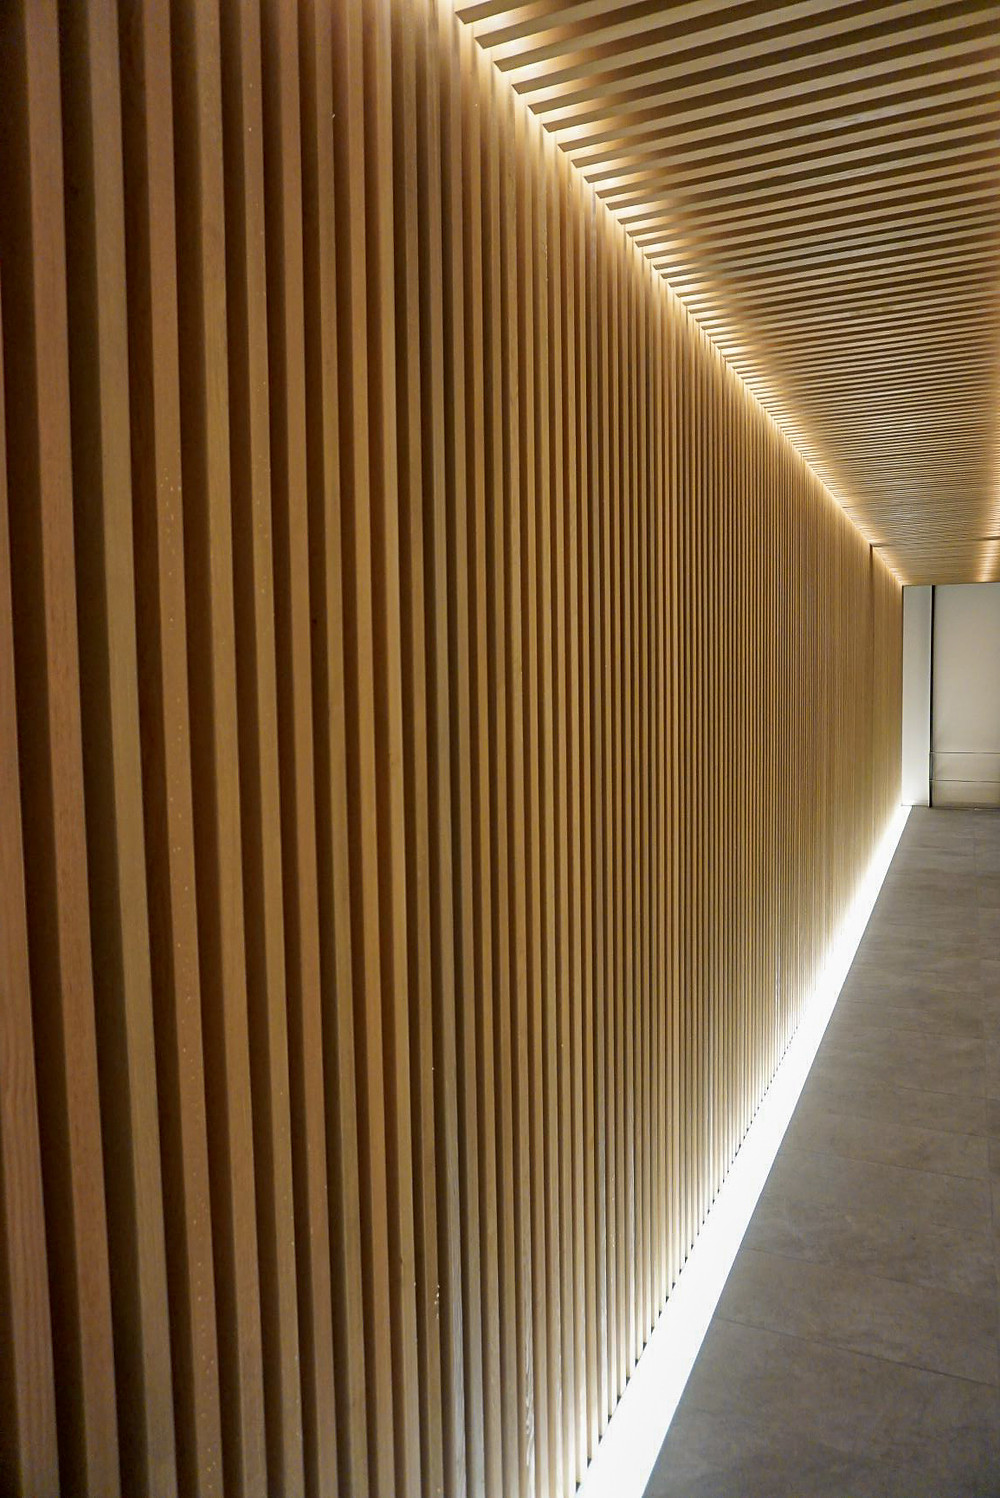 Kyoto Kumico Amaterrace Entrance: Repetition of lines and rhythm highlighted with floor LED's